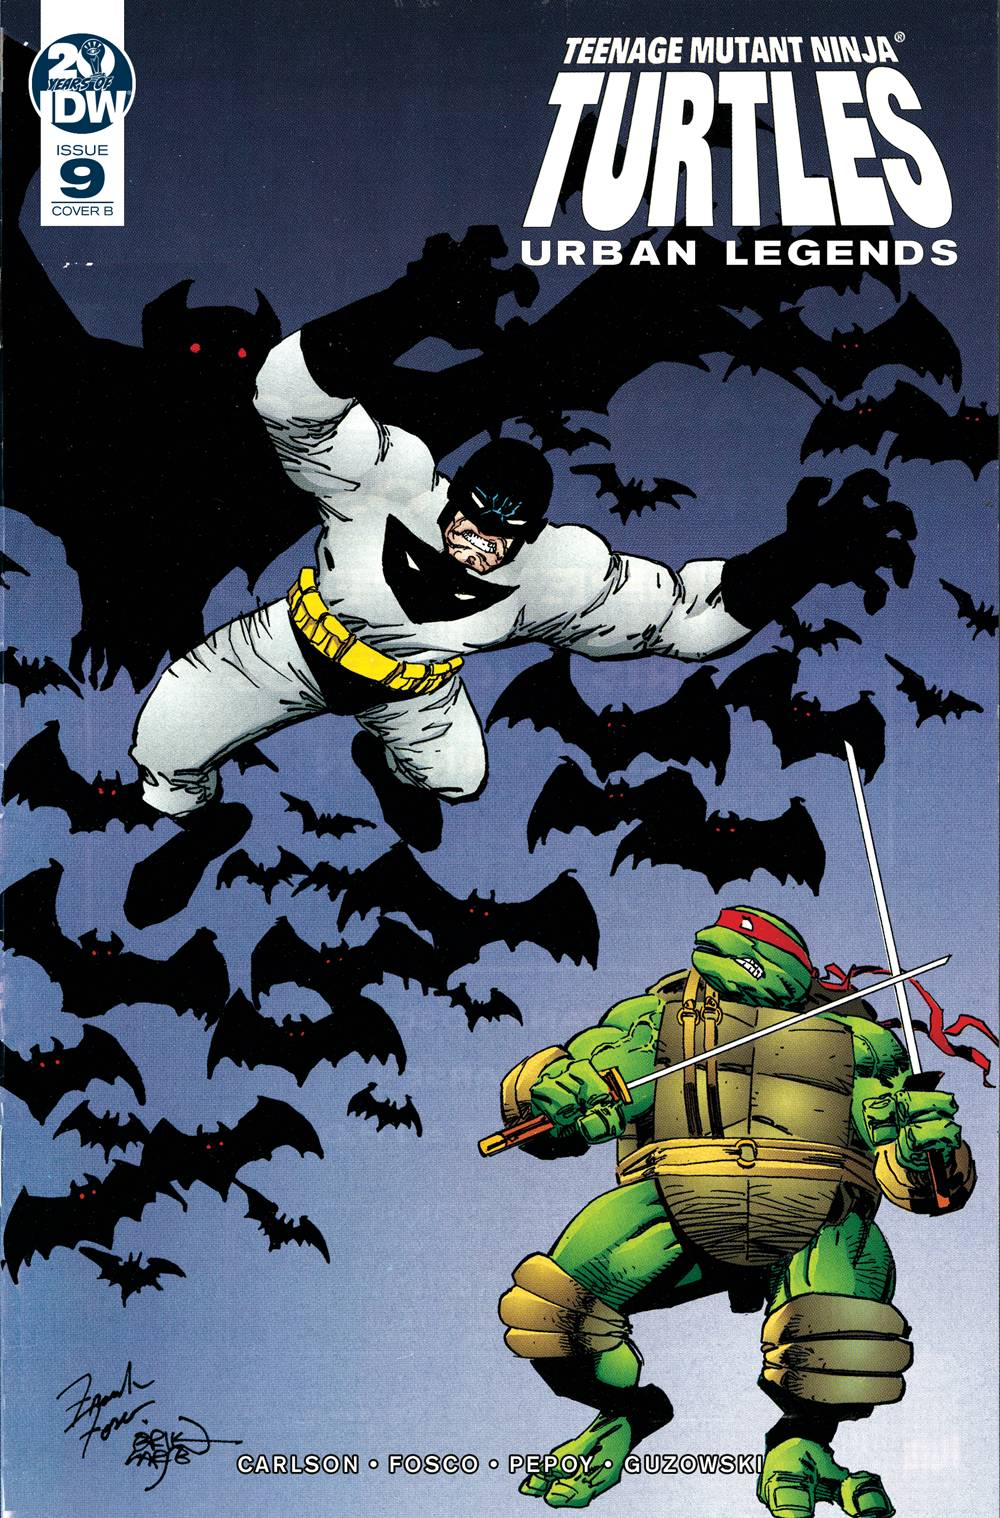 TMNT Urban Legends #9